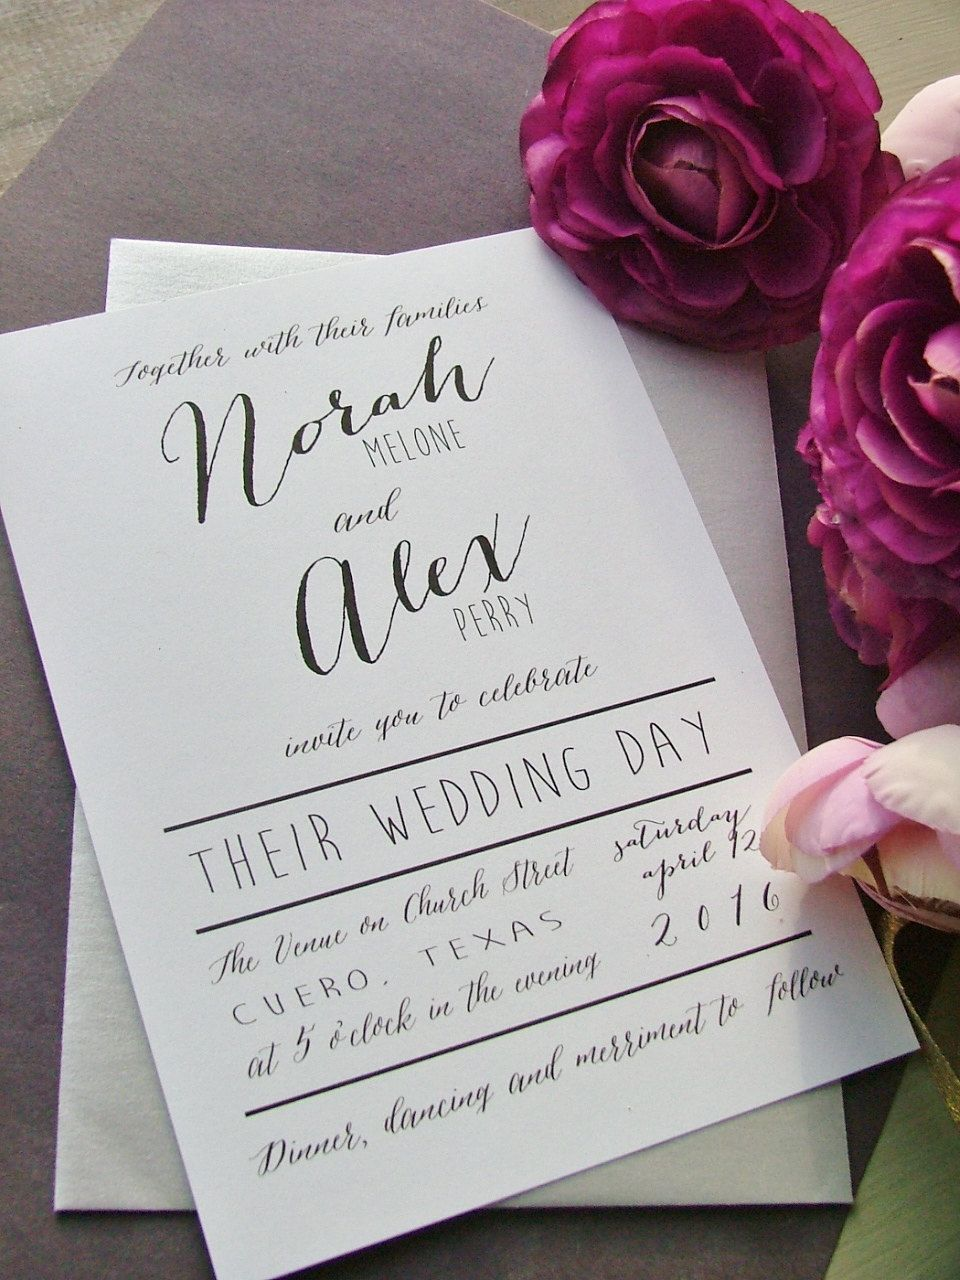 Top 10 wedding invitation trends for 2017 invitations stationery 2017 calligraphy wedding invitations trends for your big day filmwisefo